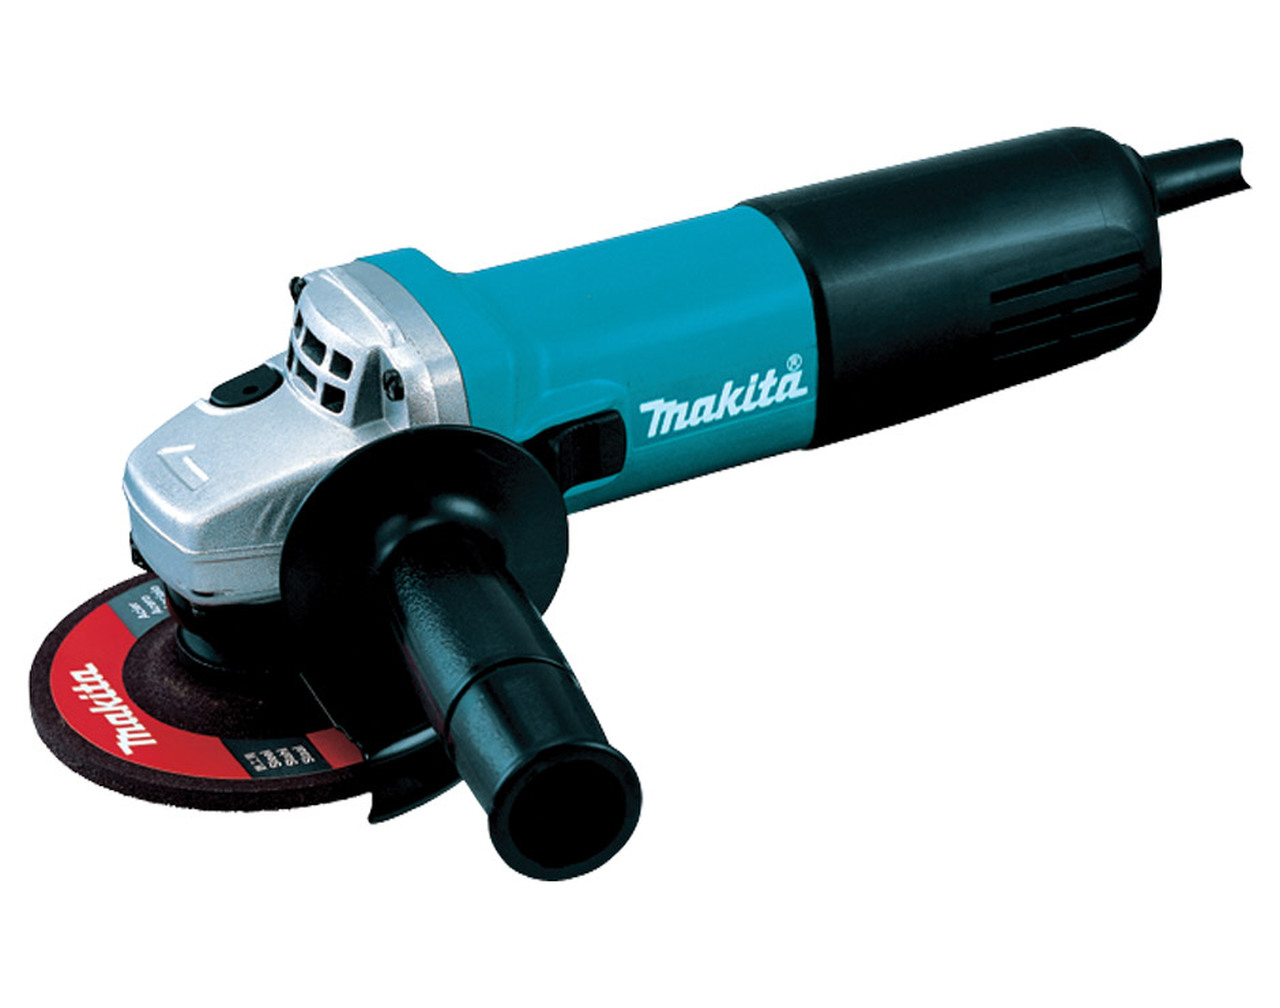 """Makita Angle Grinder, 115mm (4.5""""), 840W, Side Switch 9557NB"""